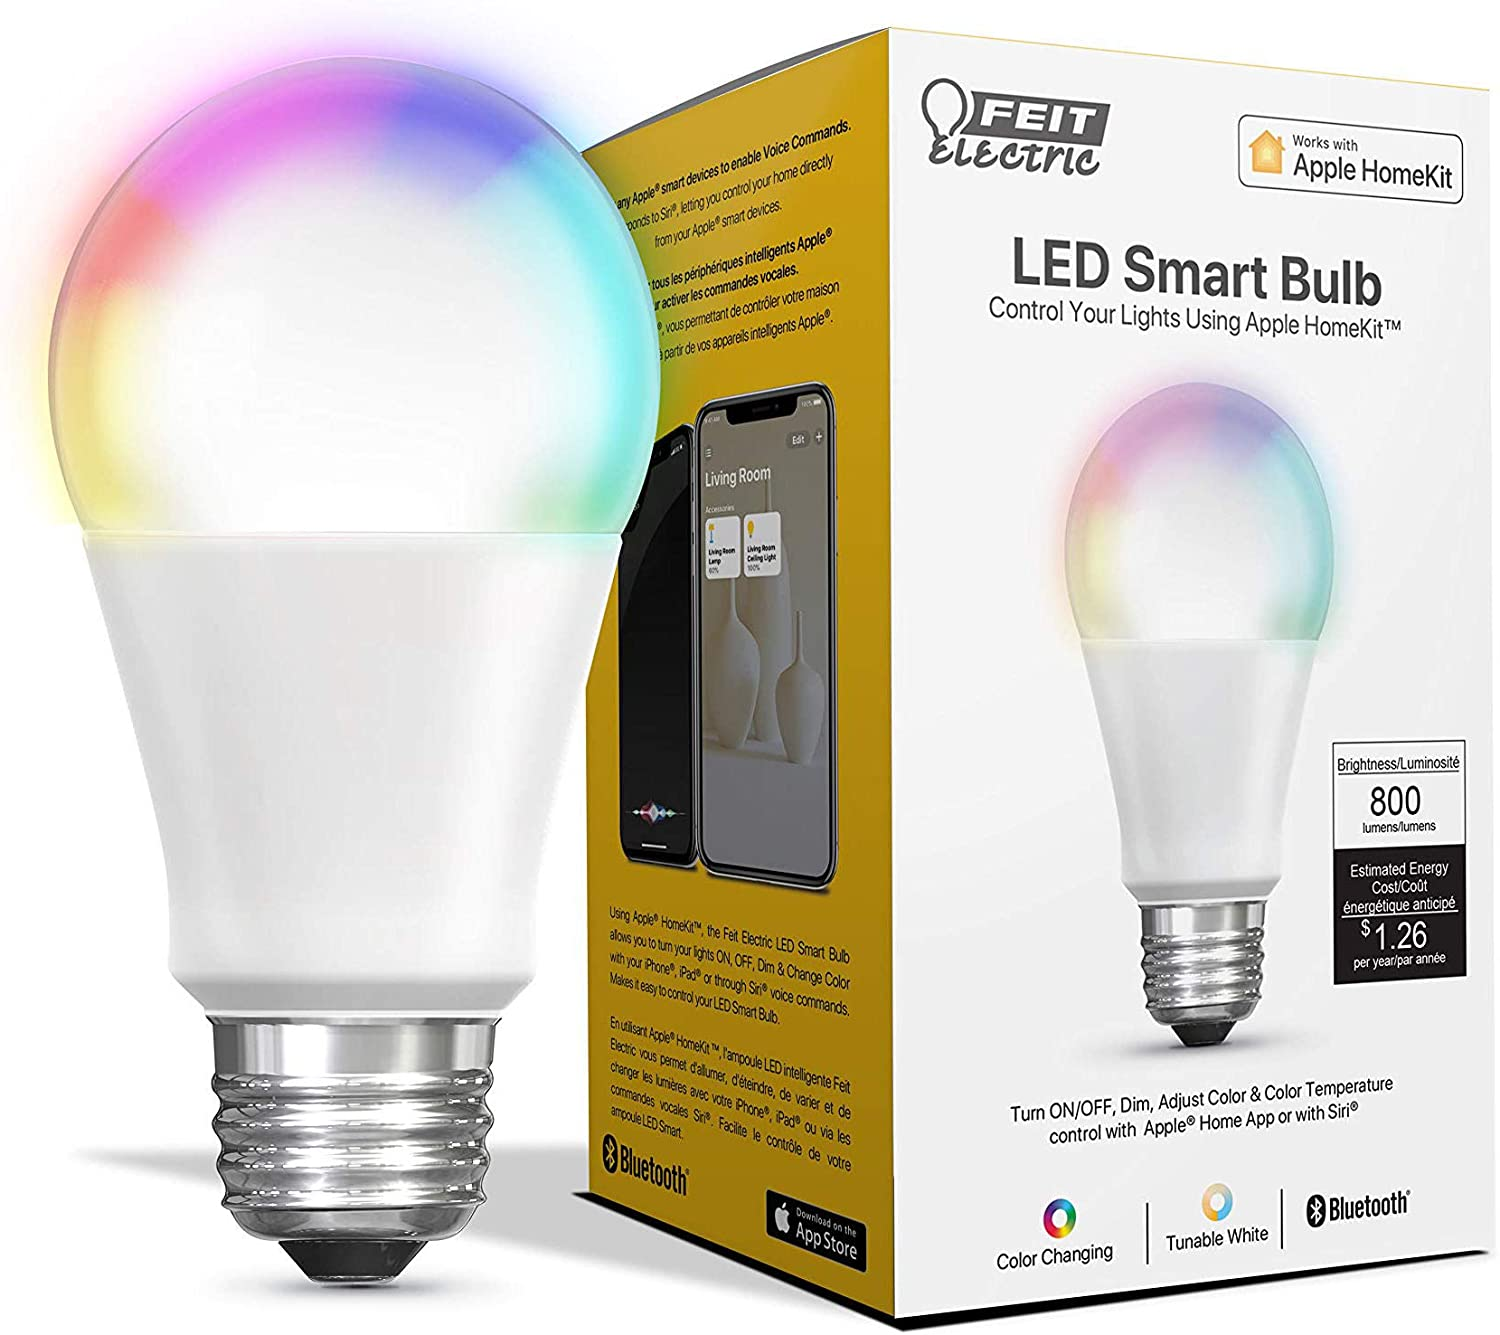 """Feit Electric OM60/RGBW/HK 60W Equivalent Tunable Changing A19 Smart, Works with Apple HomeKit and Siri Voice Control, No Hub Required LED Light Bulb, 4.4"""" H x 2.4"""" D, Multi-Color RGBW"""